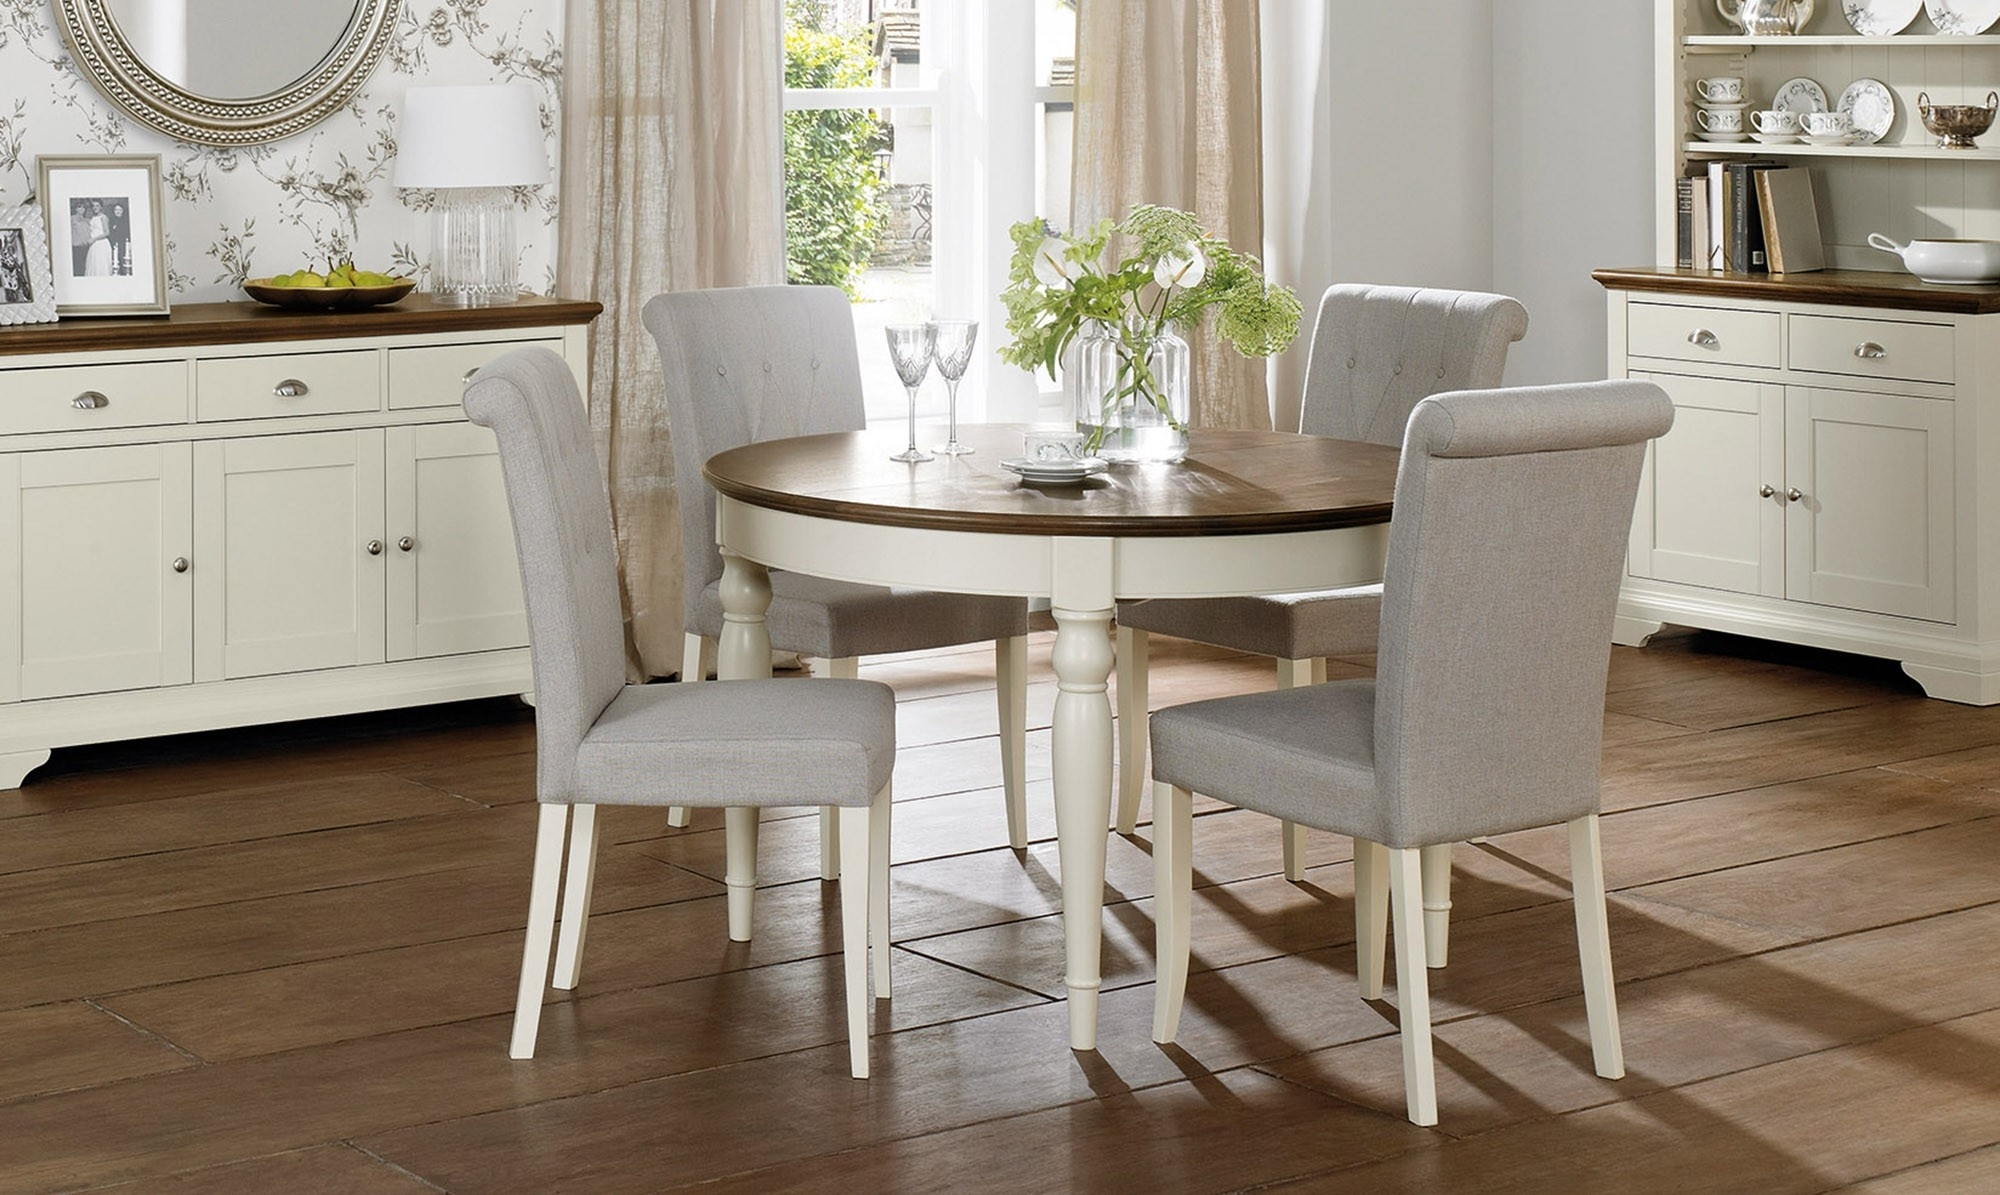 Newest Dining Tables: Interesting Small Circular Dining Table And Chairs Inside Circular Dining Tables For (View 9 of 25)